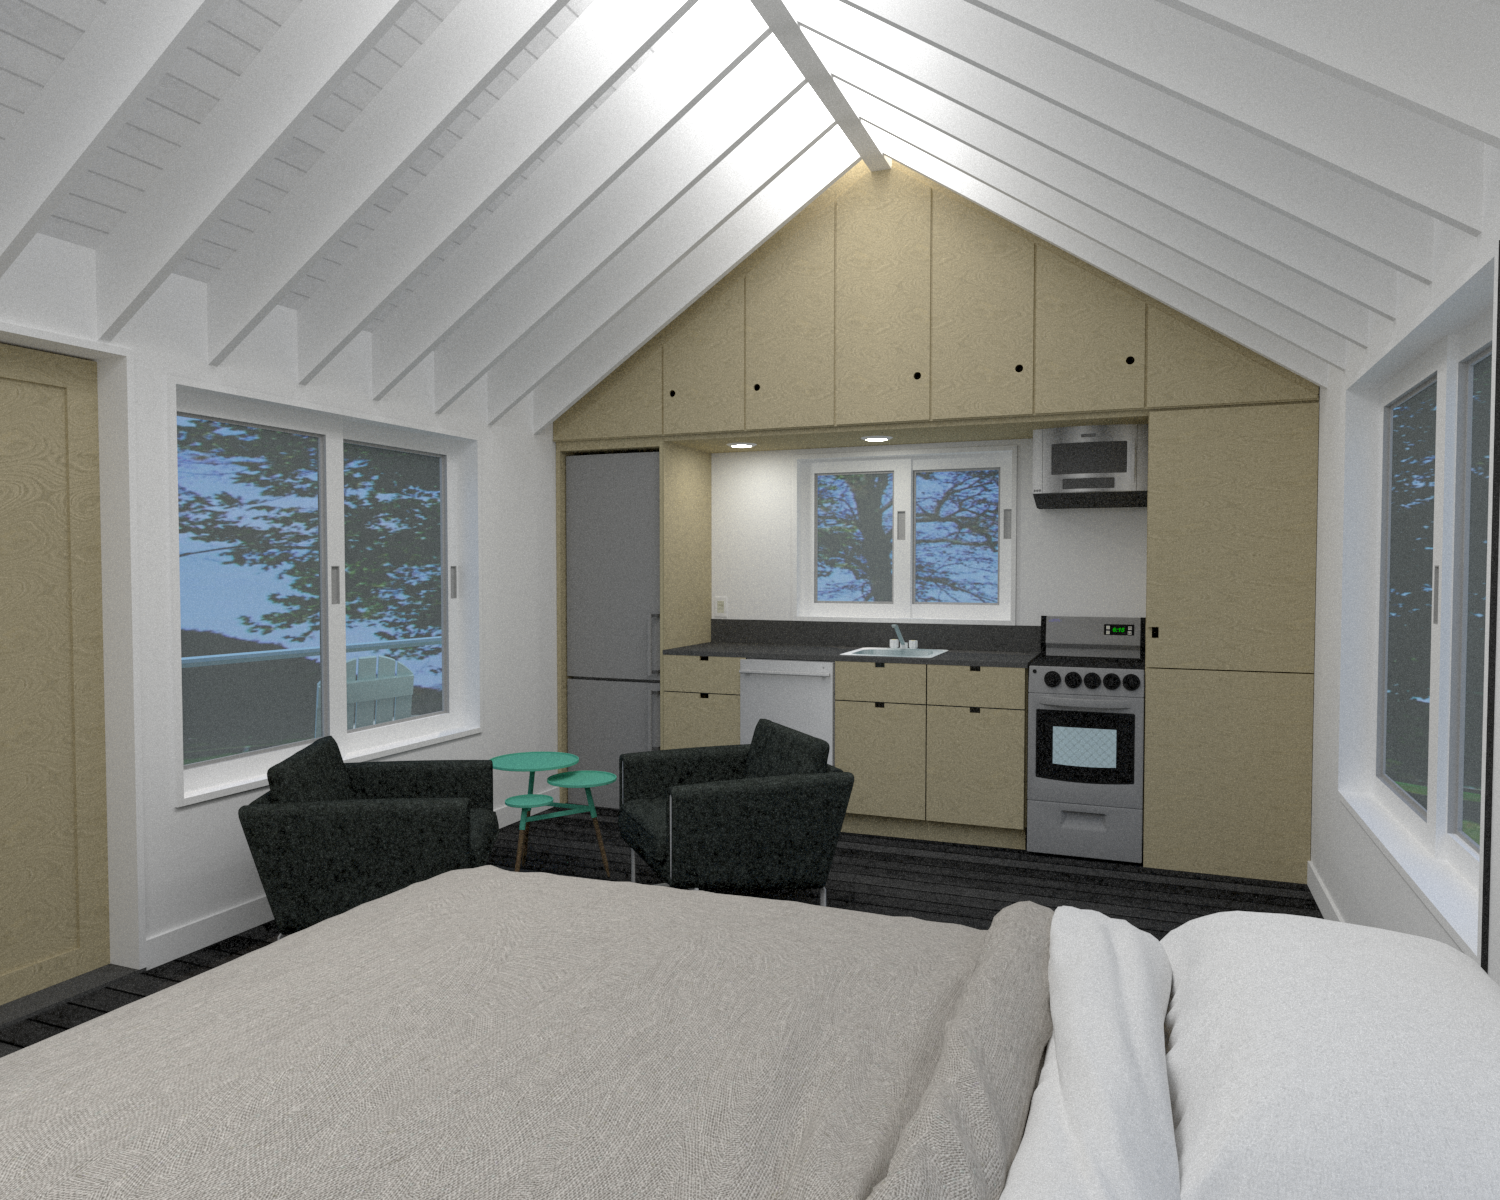 tiny house render kitchen.png